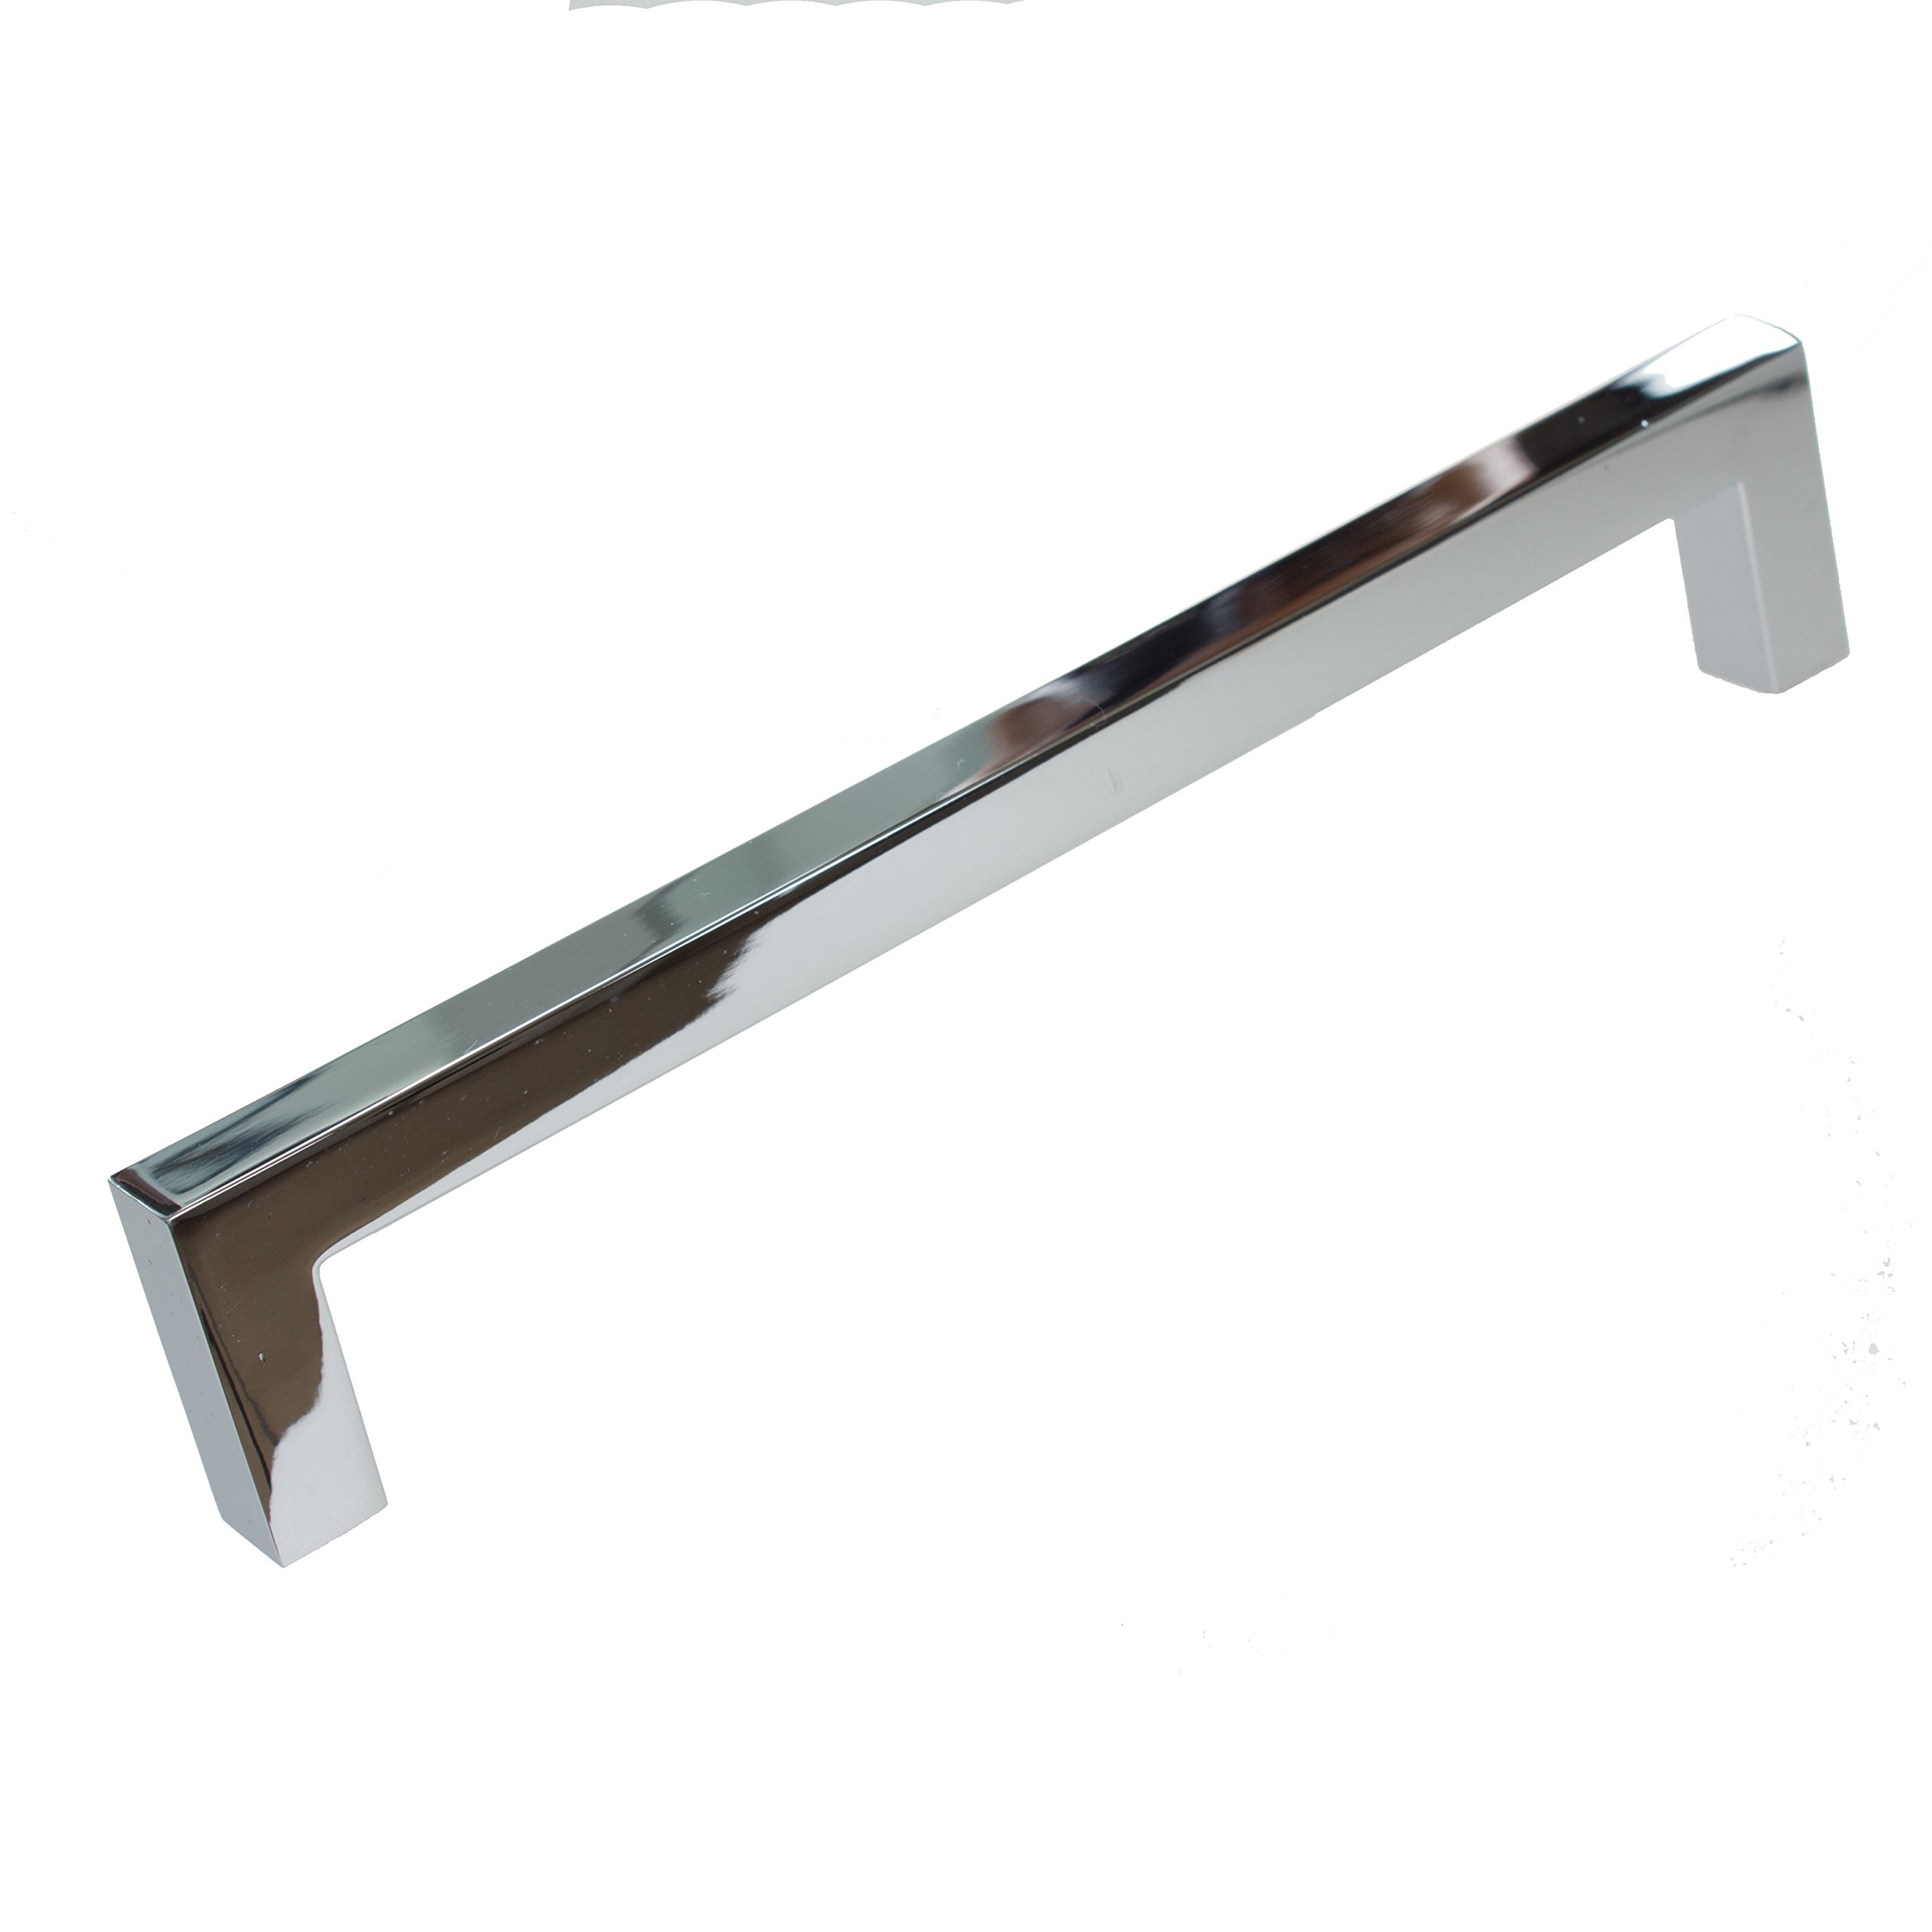 GlideRite Hardware 21683-160-PC-10 Solid Square Slim Cabinet Bar Pulls, 10 Pack, 6.25'', Polished Chrome